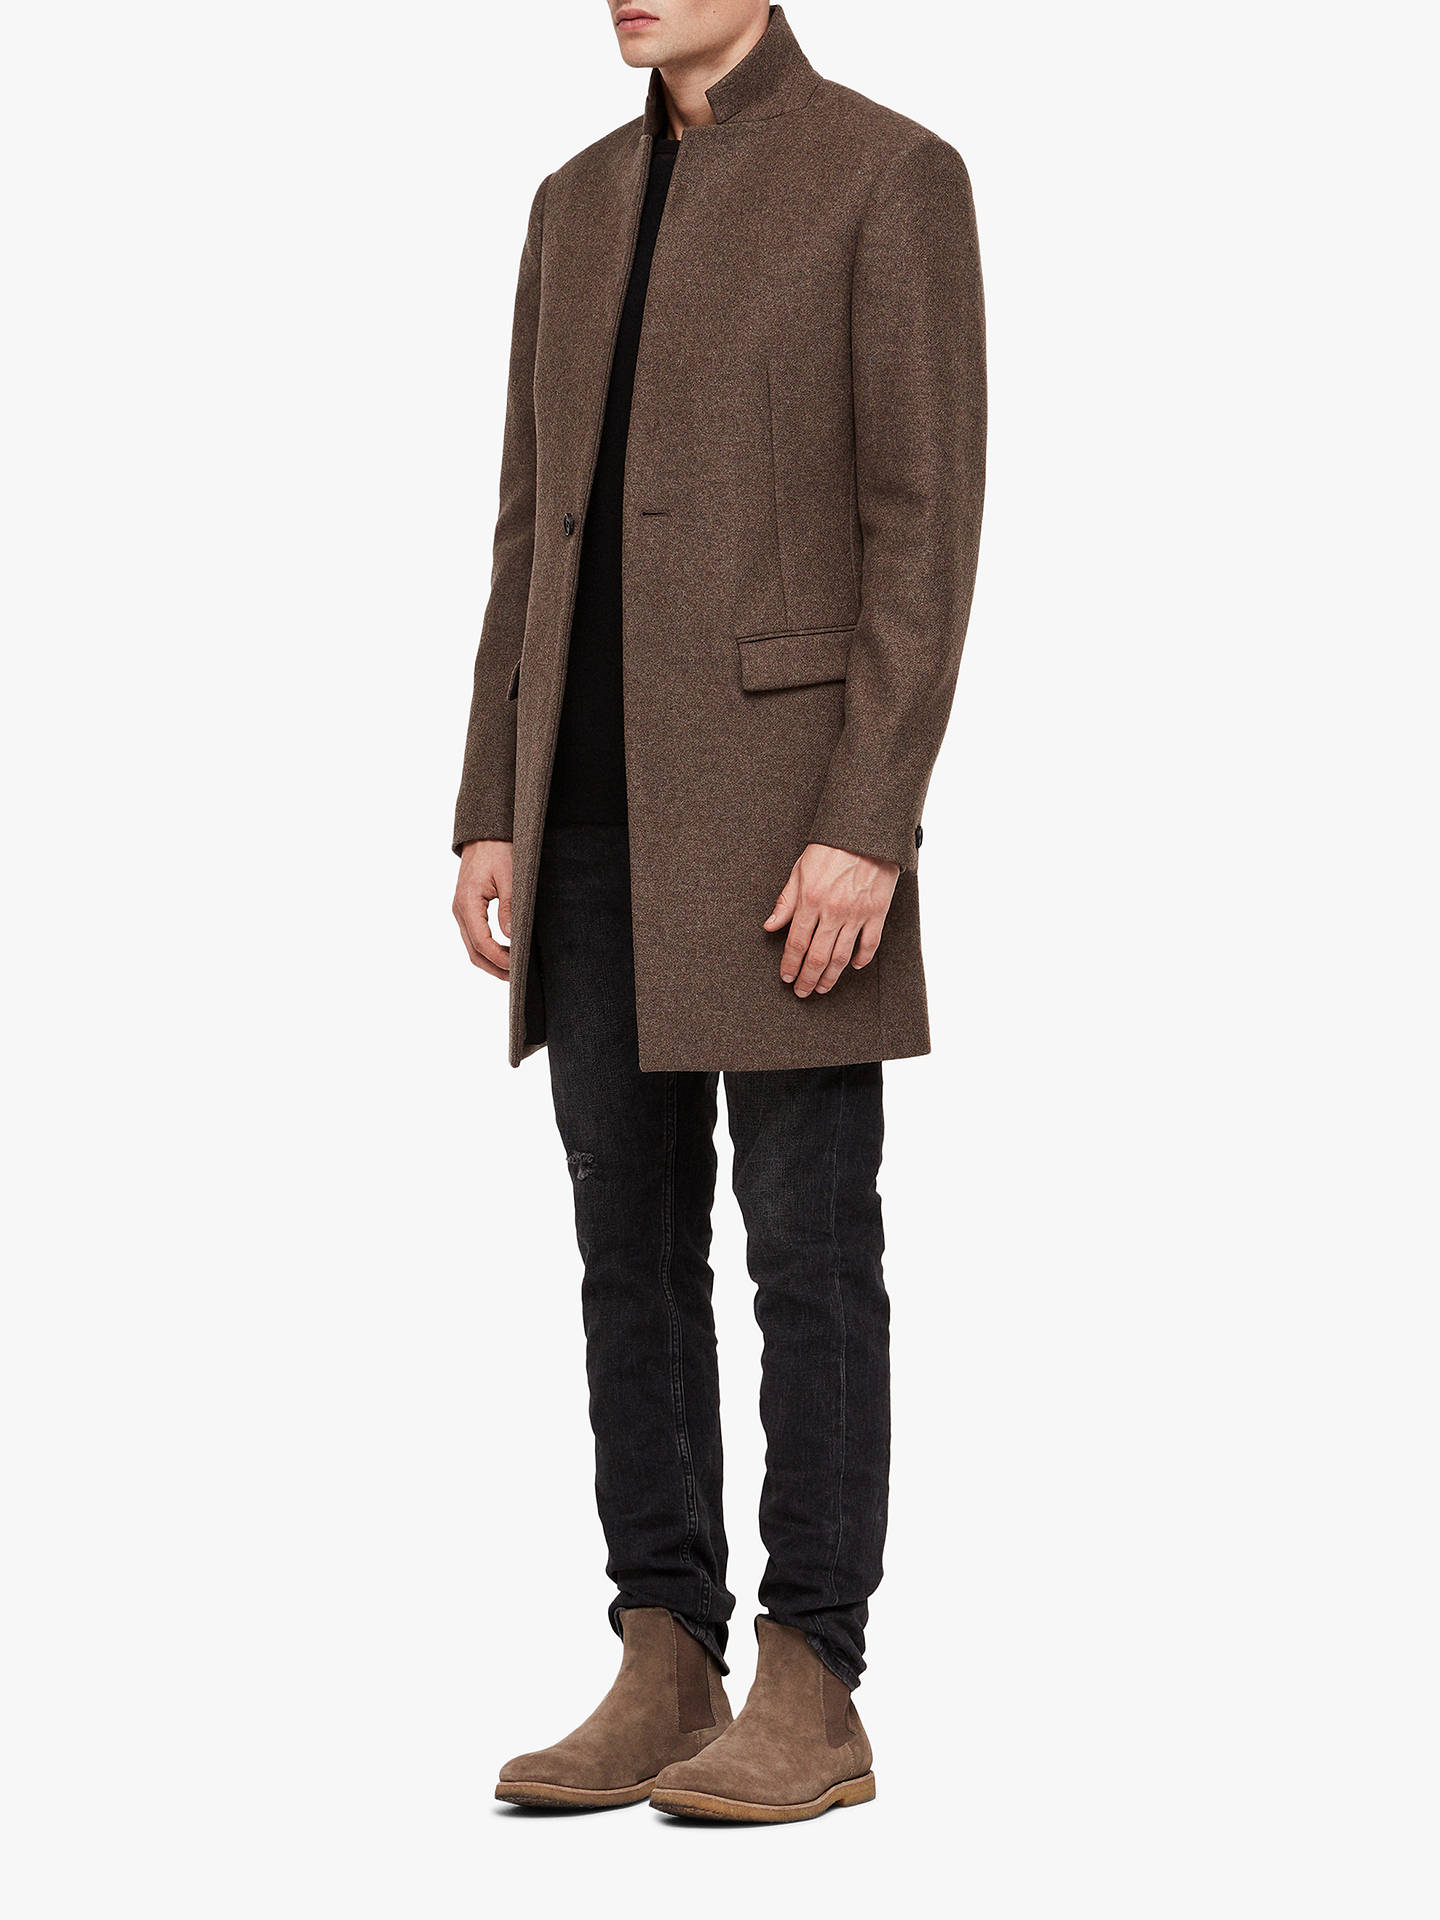 BuyAllSaints Bodell Coat, Ash Brown, 34R Online at johnlewis.com